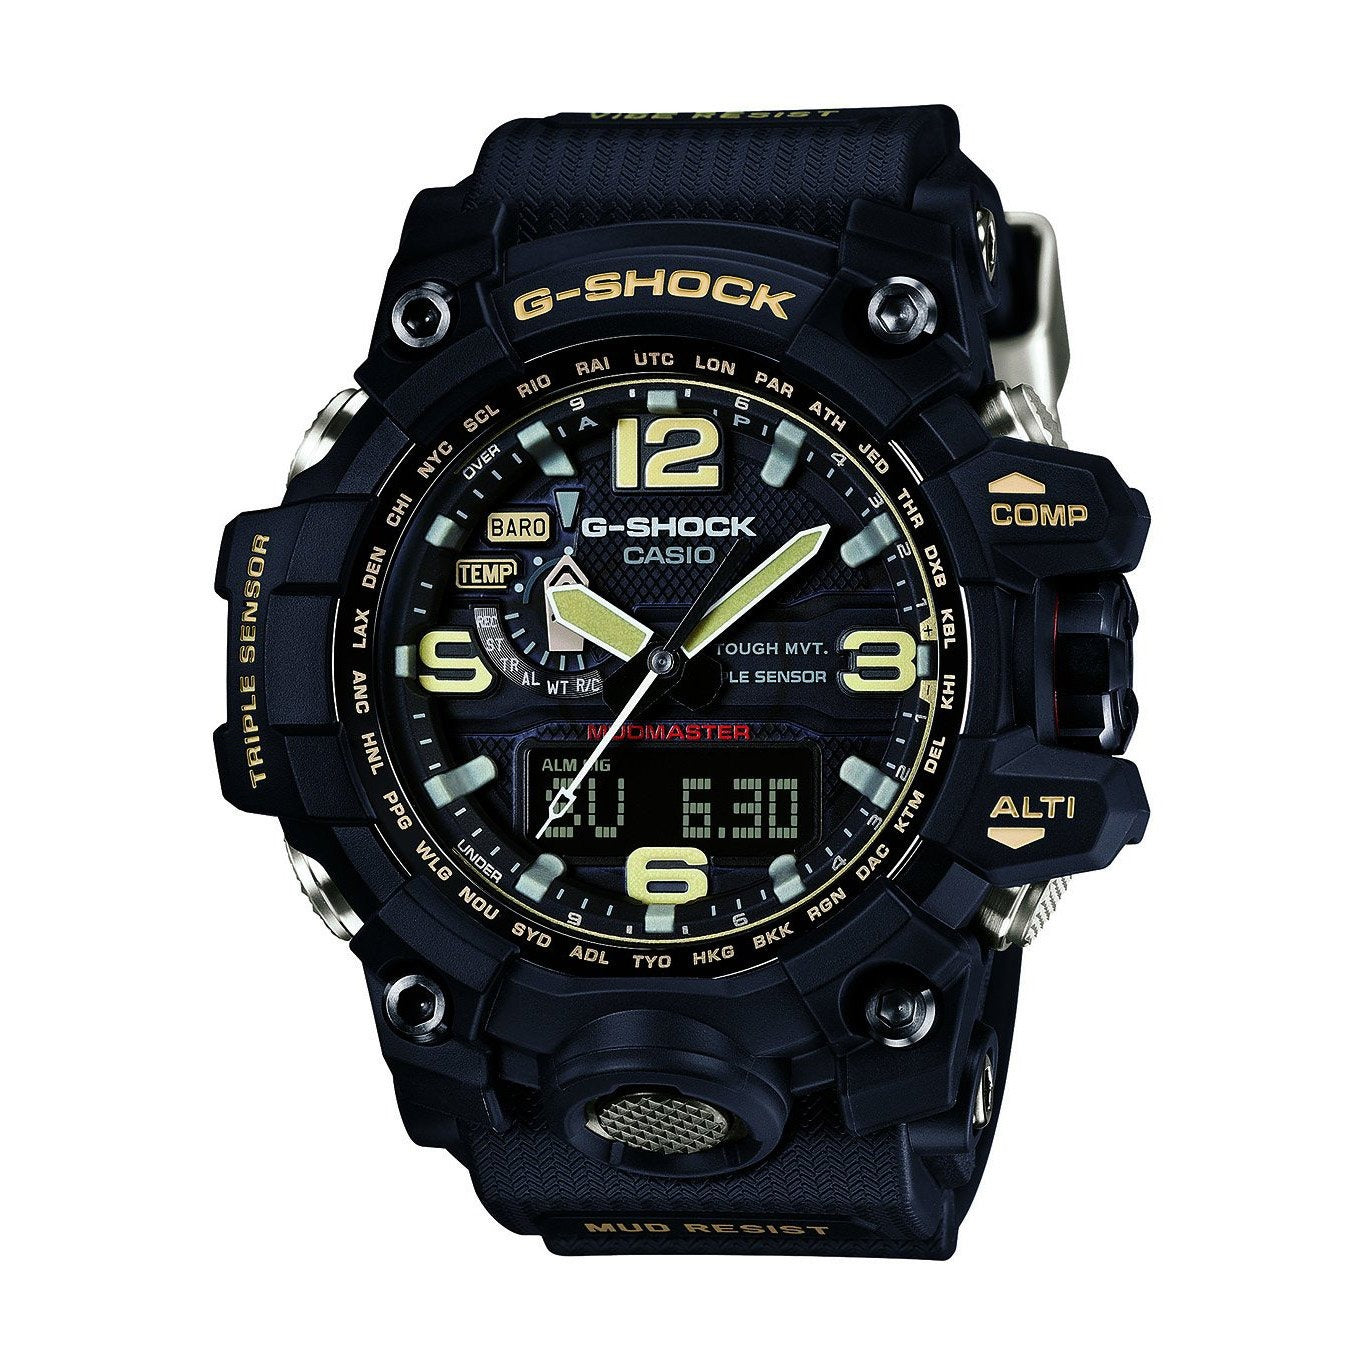 Casio G Shock MUDMASTER Watch GWG1000 series watch- Triple Sensors Barometer,ALT, Digital Compass Vibration resistant, Black LCD, Black Resin